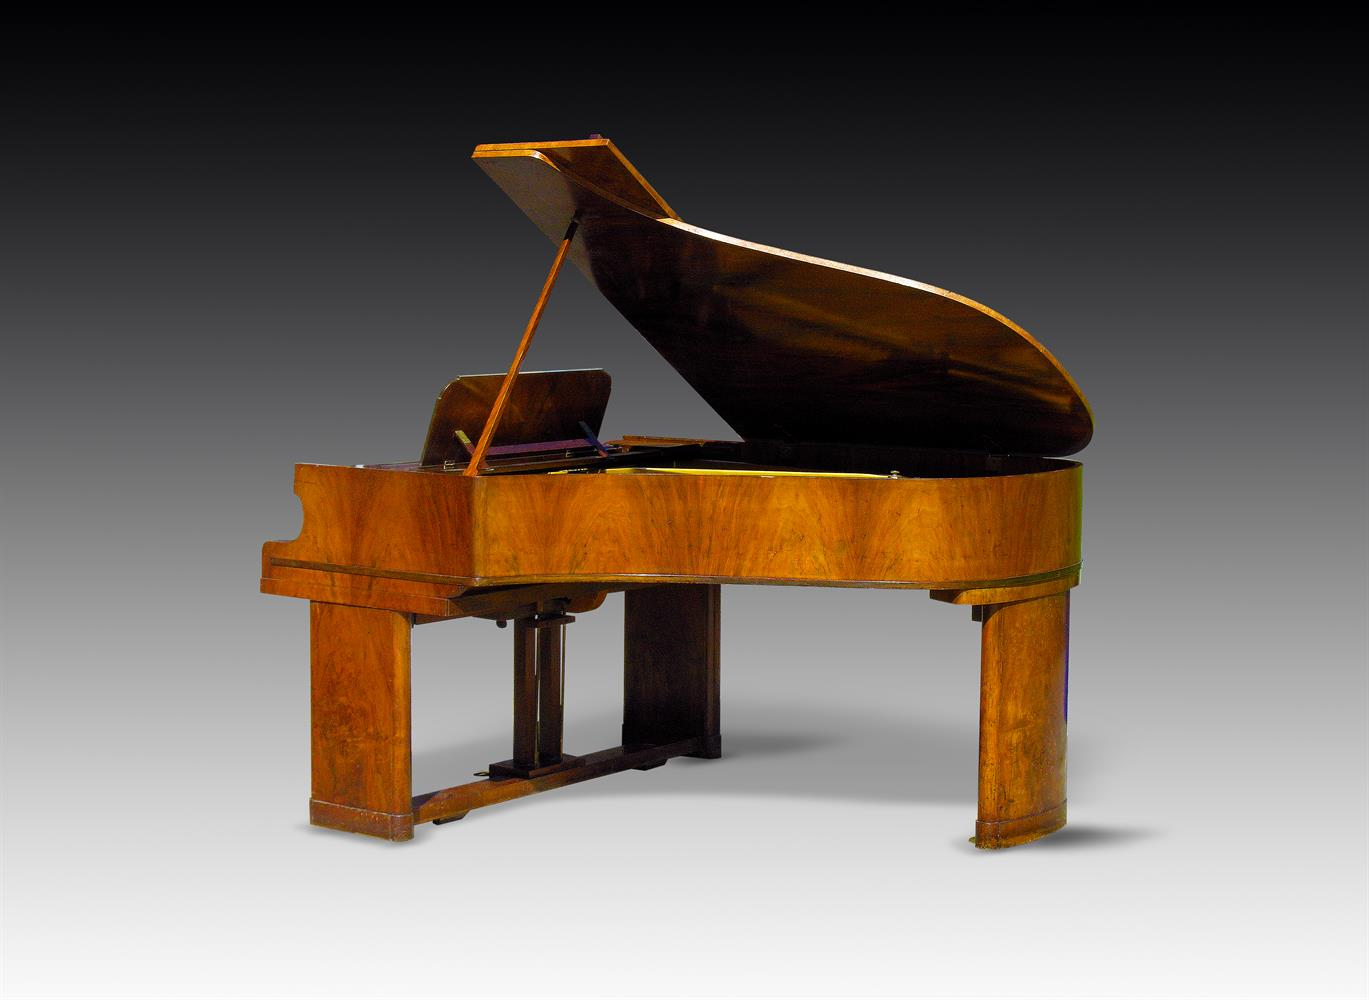 † CHAPPELL; A 6' 2'' GRAND PIANO FROM THE MAURETANIA 2, NUMBER 83215, 1948 - Image 2 of 4